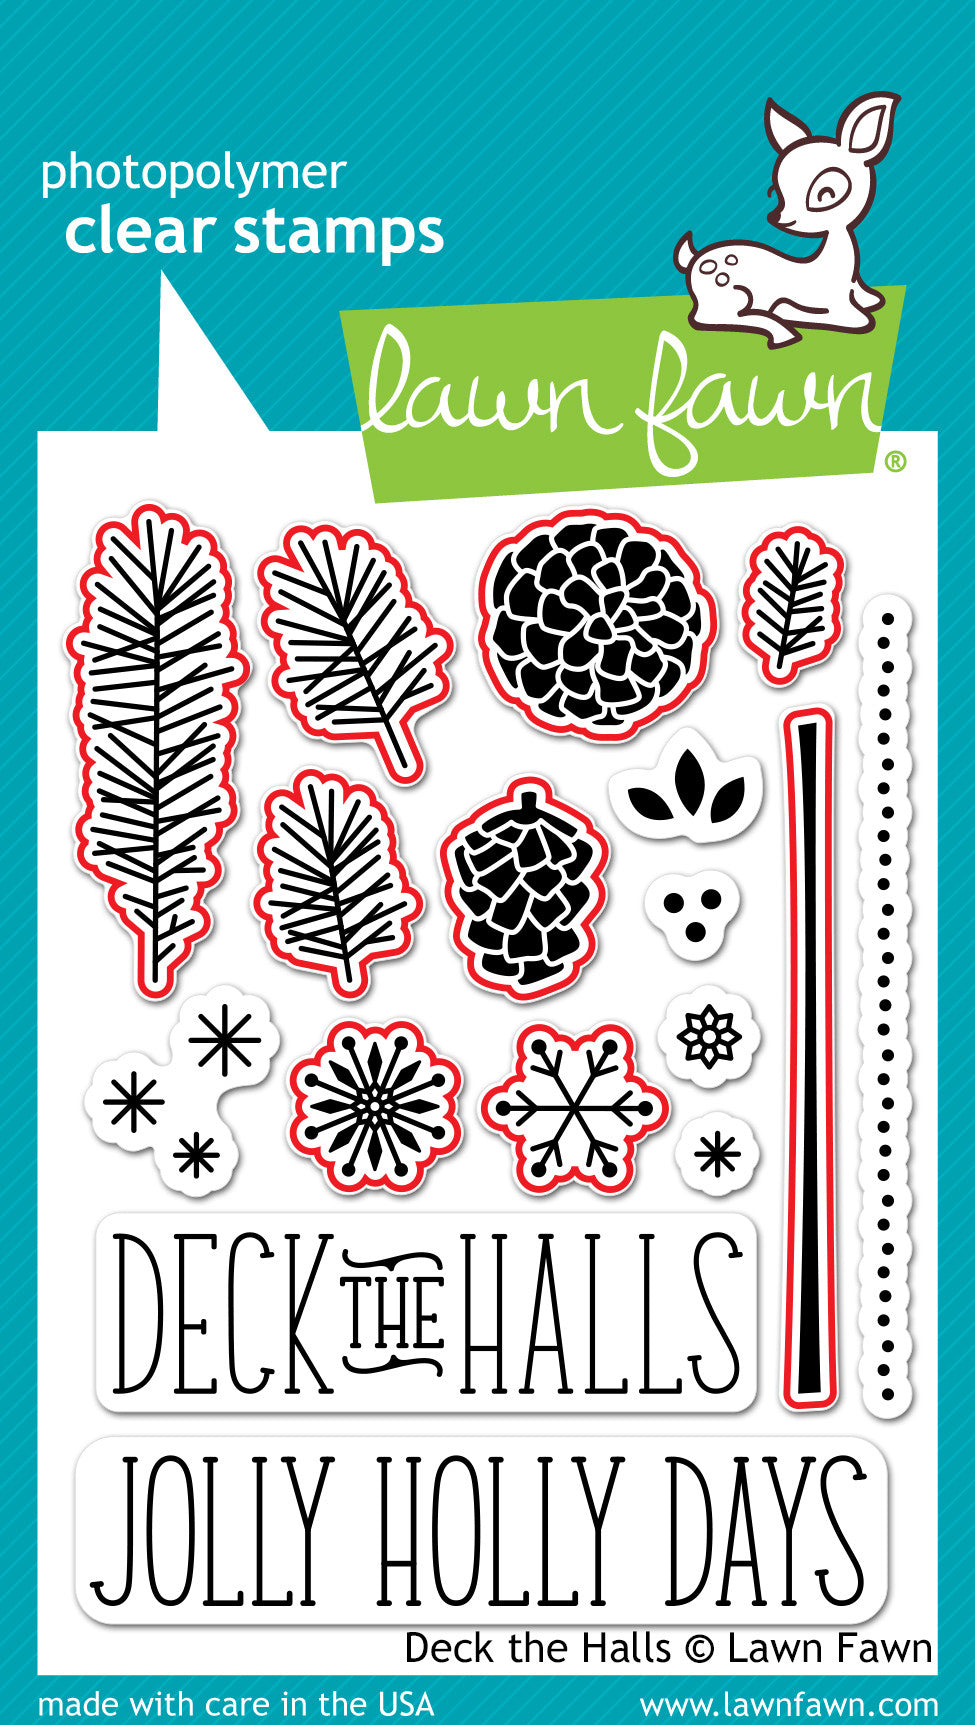 deck the halls - lawn cuts